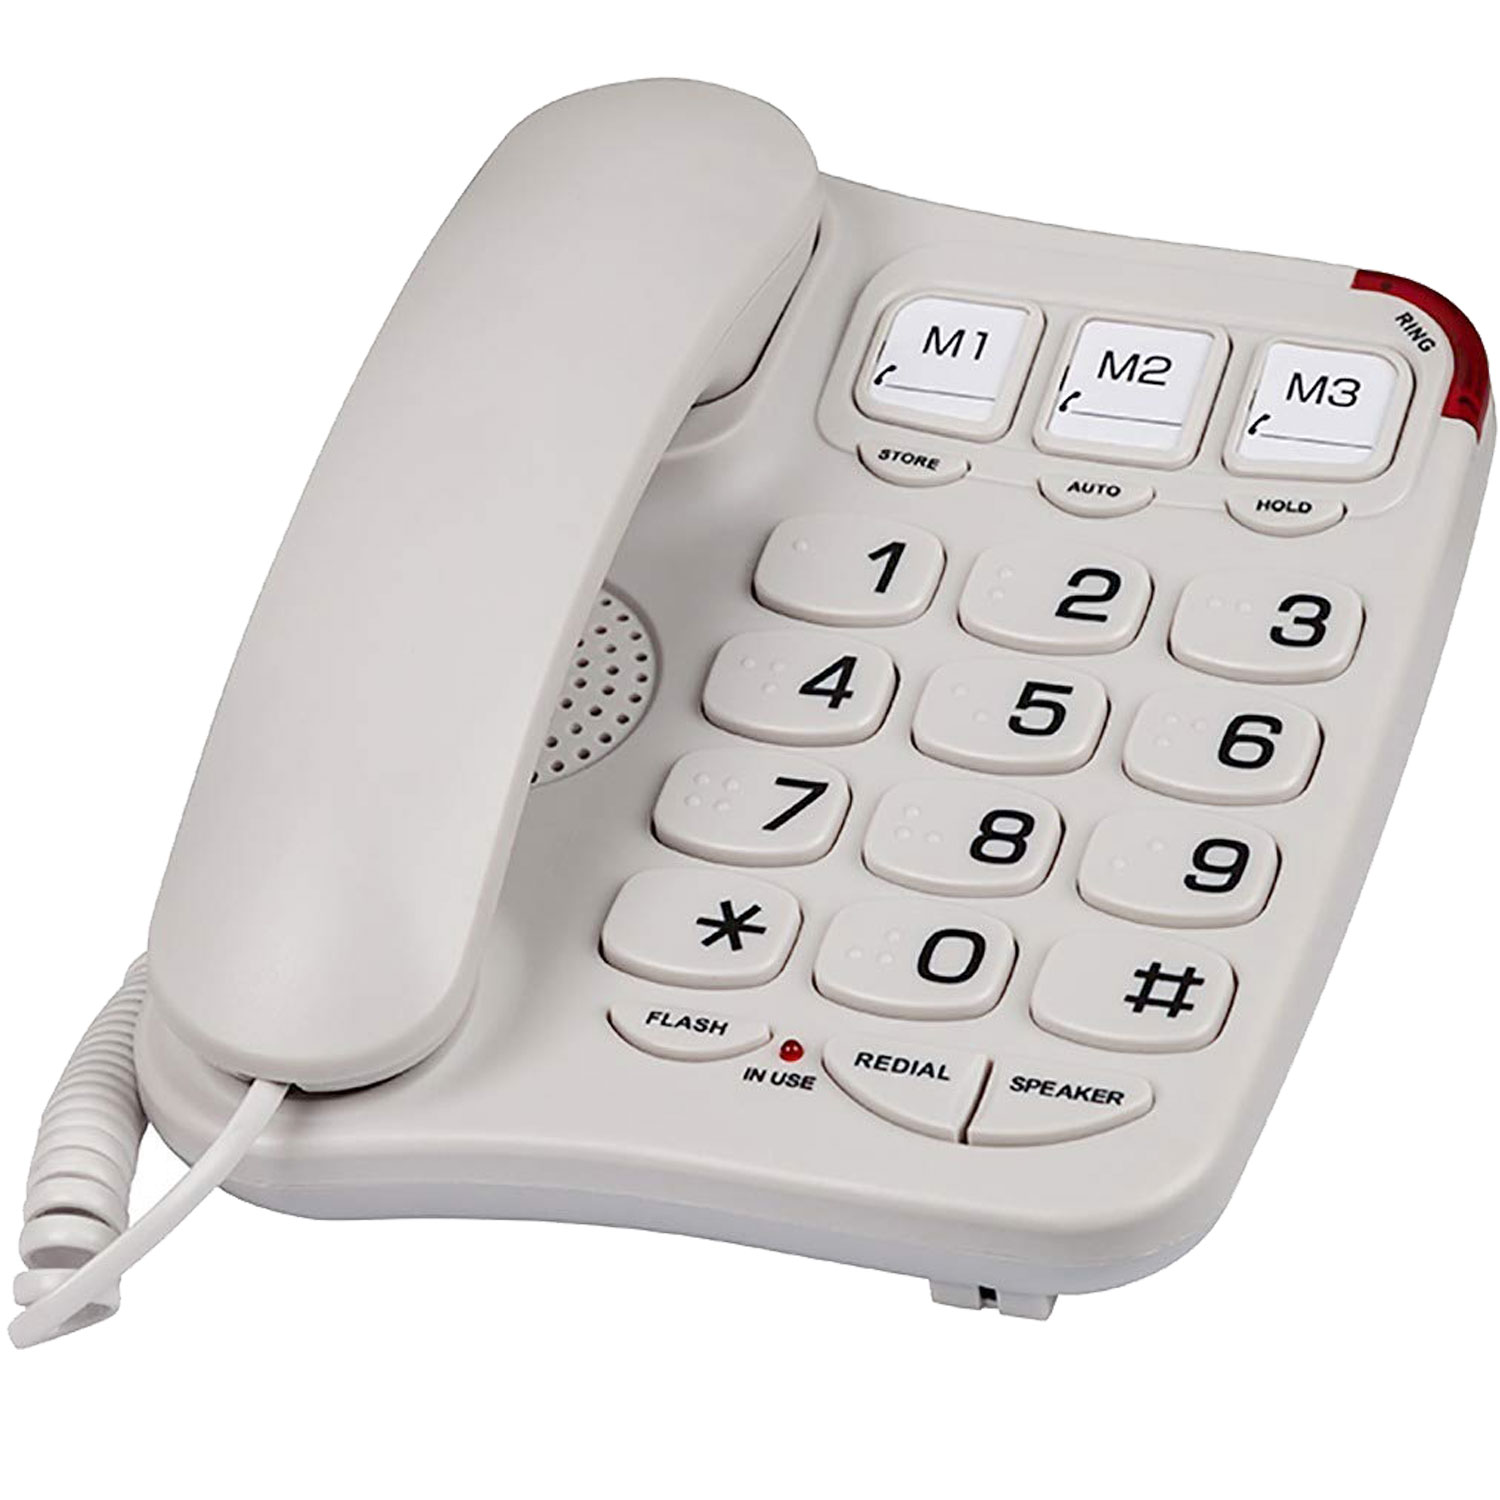 Braille Big Button phone for visually impaired and the elderly